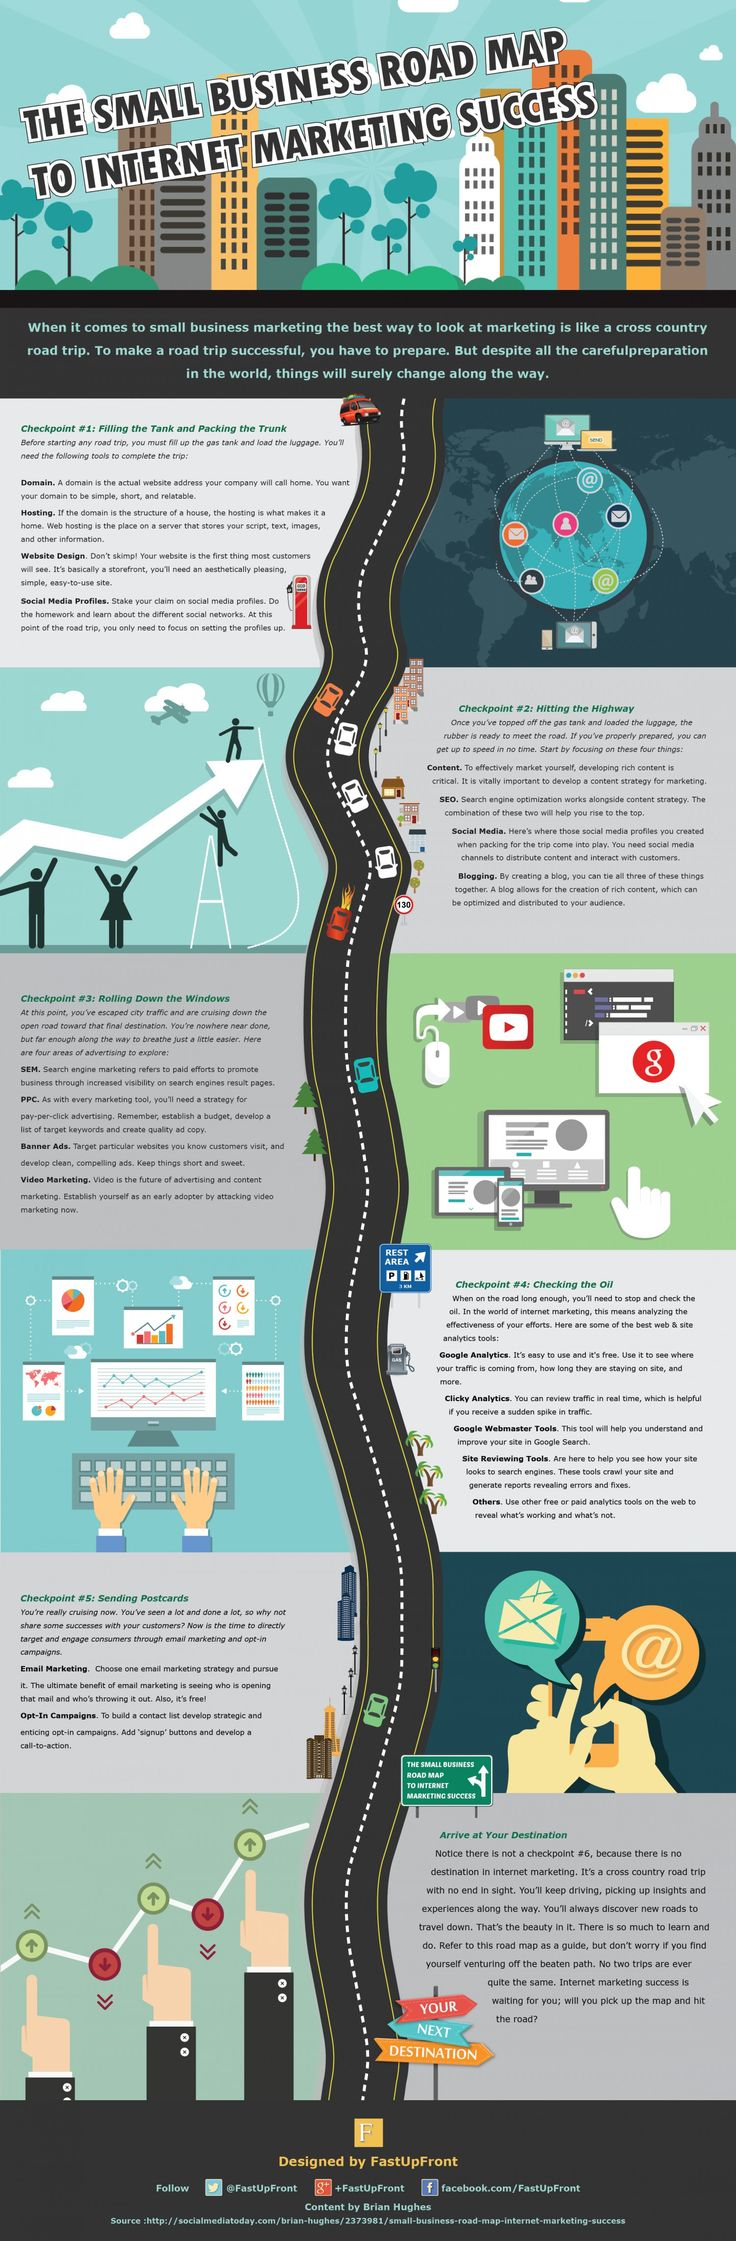 From FastUpFront & Brian Hughes - Small Business Road Map to Internet Marketing Success Infographic